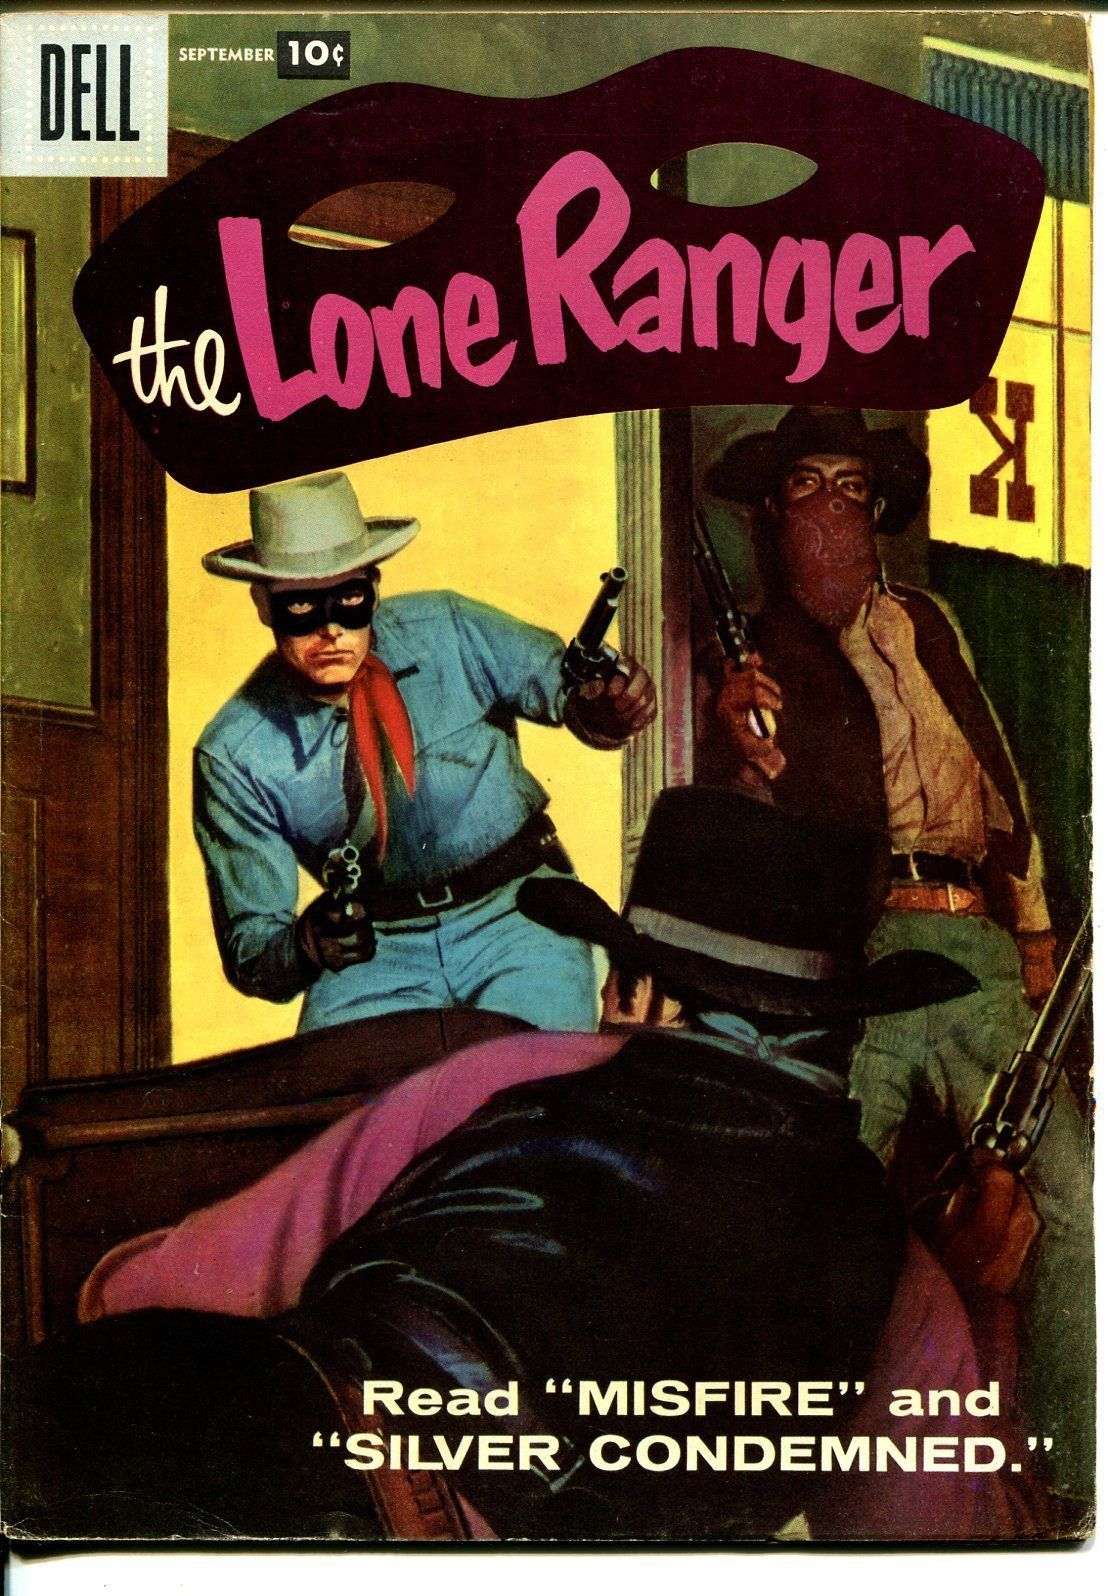 Lone Ranger #111 1957-Dell-last painted cover-FN/VF